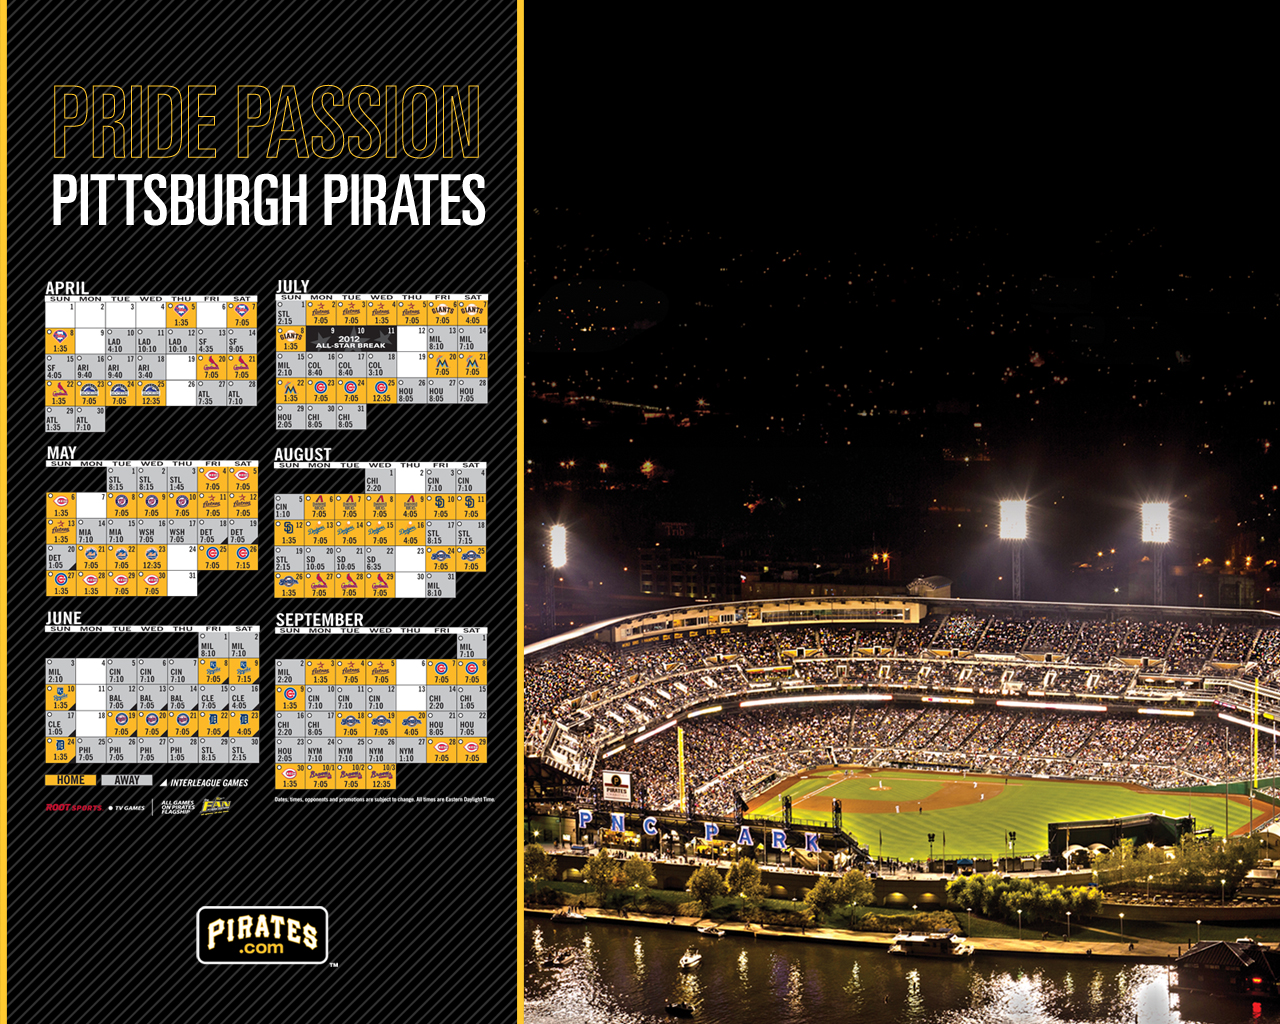 Pirates Desktop Wallpapers Pittsburgh Pirates 1280x1024